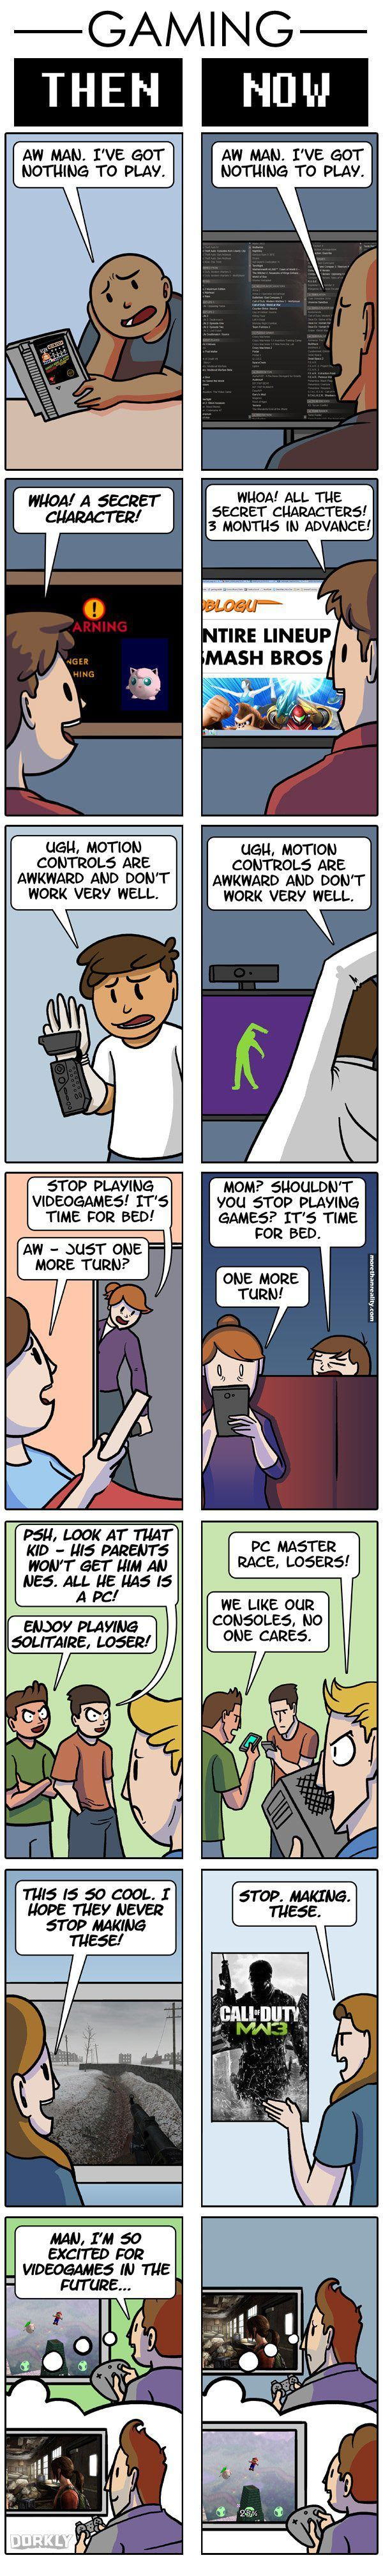 Then and Now: Videogames